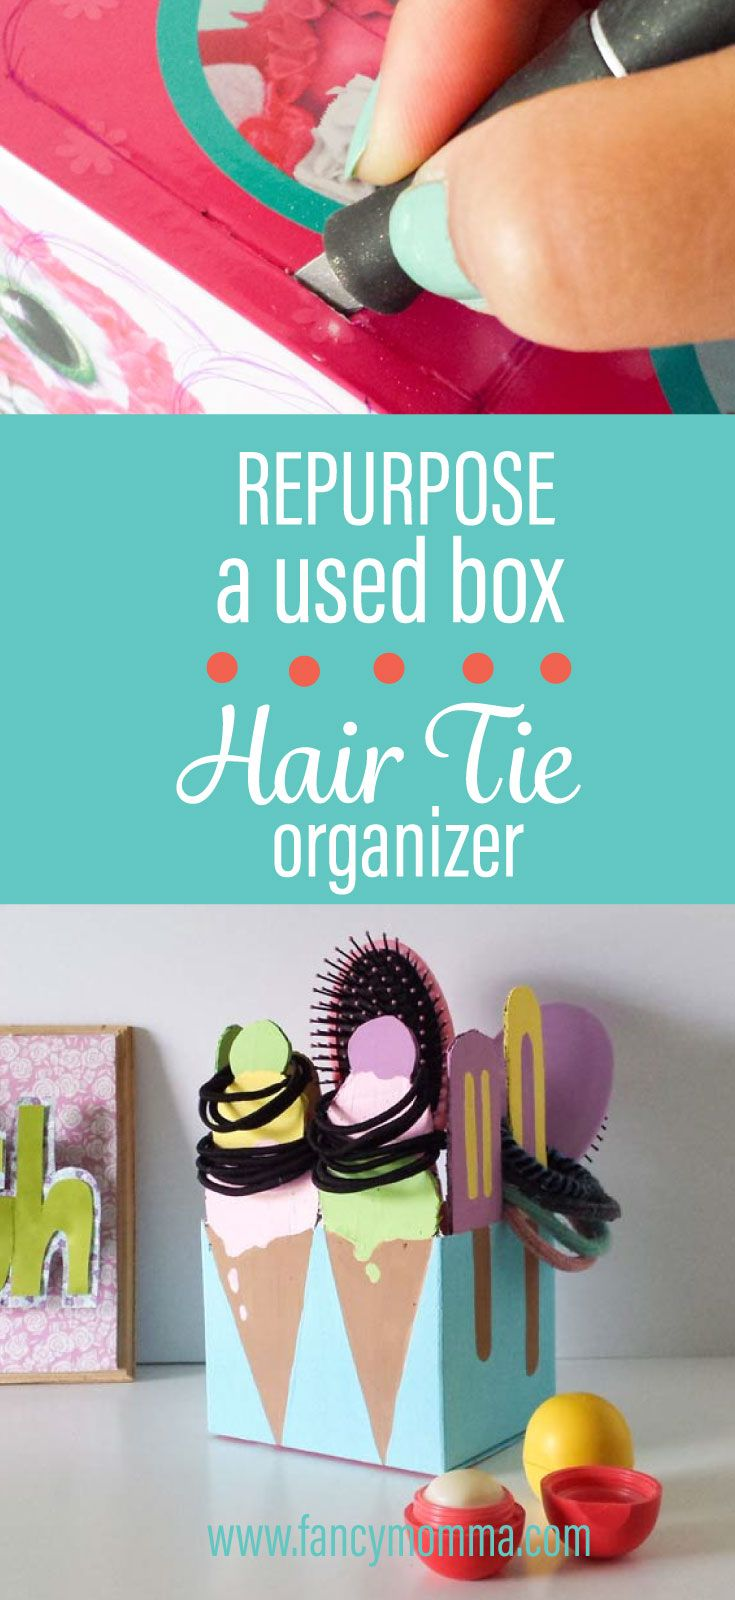 Repurpose any used box and turn it into something functional. Make it into a hair tie organizer. You gotta try this diy!